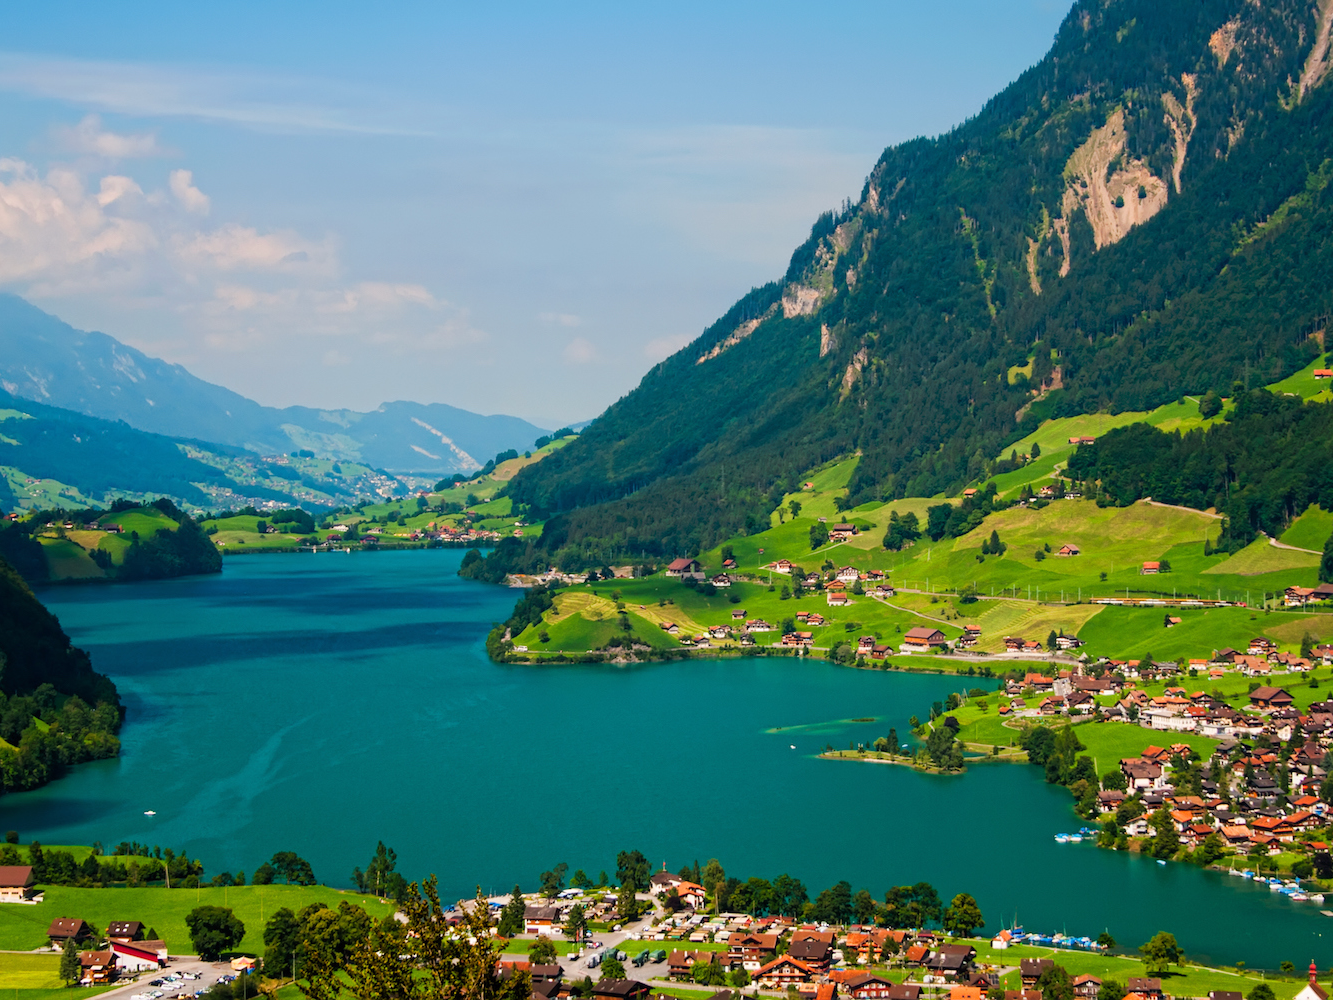 The town's beautiful scenery is thanks to the fact that Interlaken is nestled into a valley, between Lake Thun and Lake Brienz.